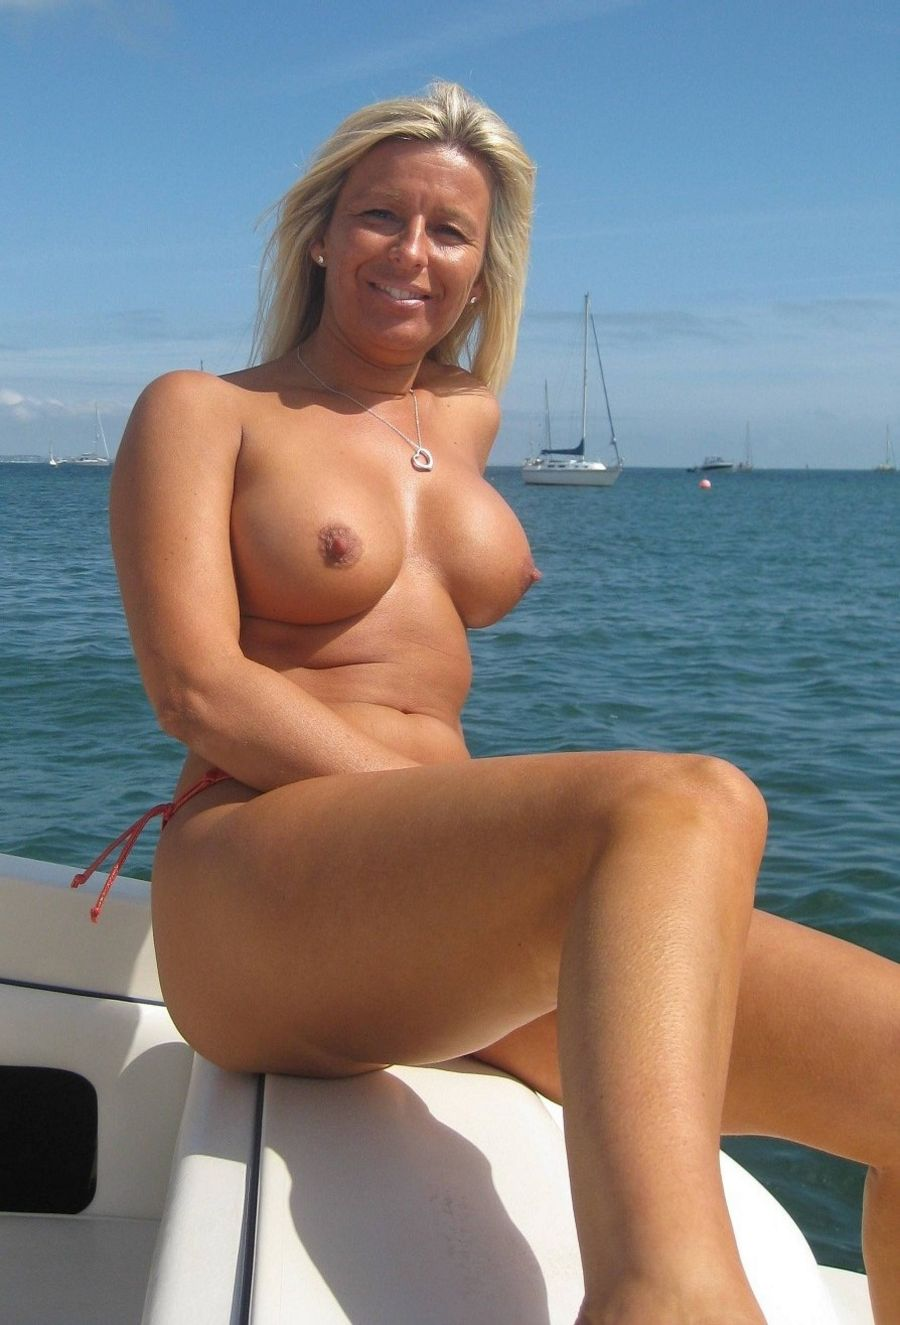 hot sexy moms - hot moms naked photos